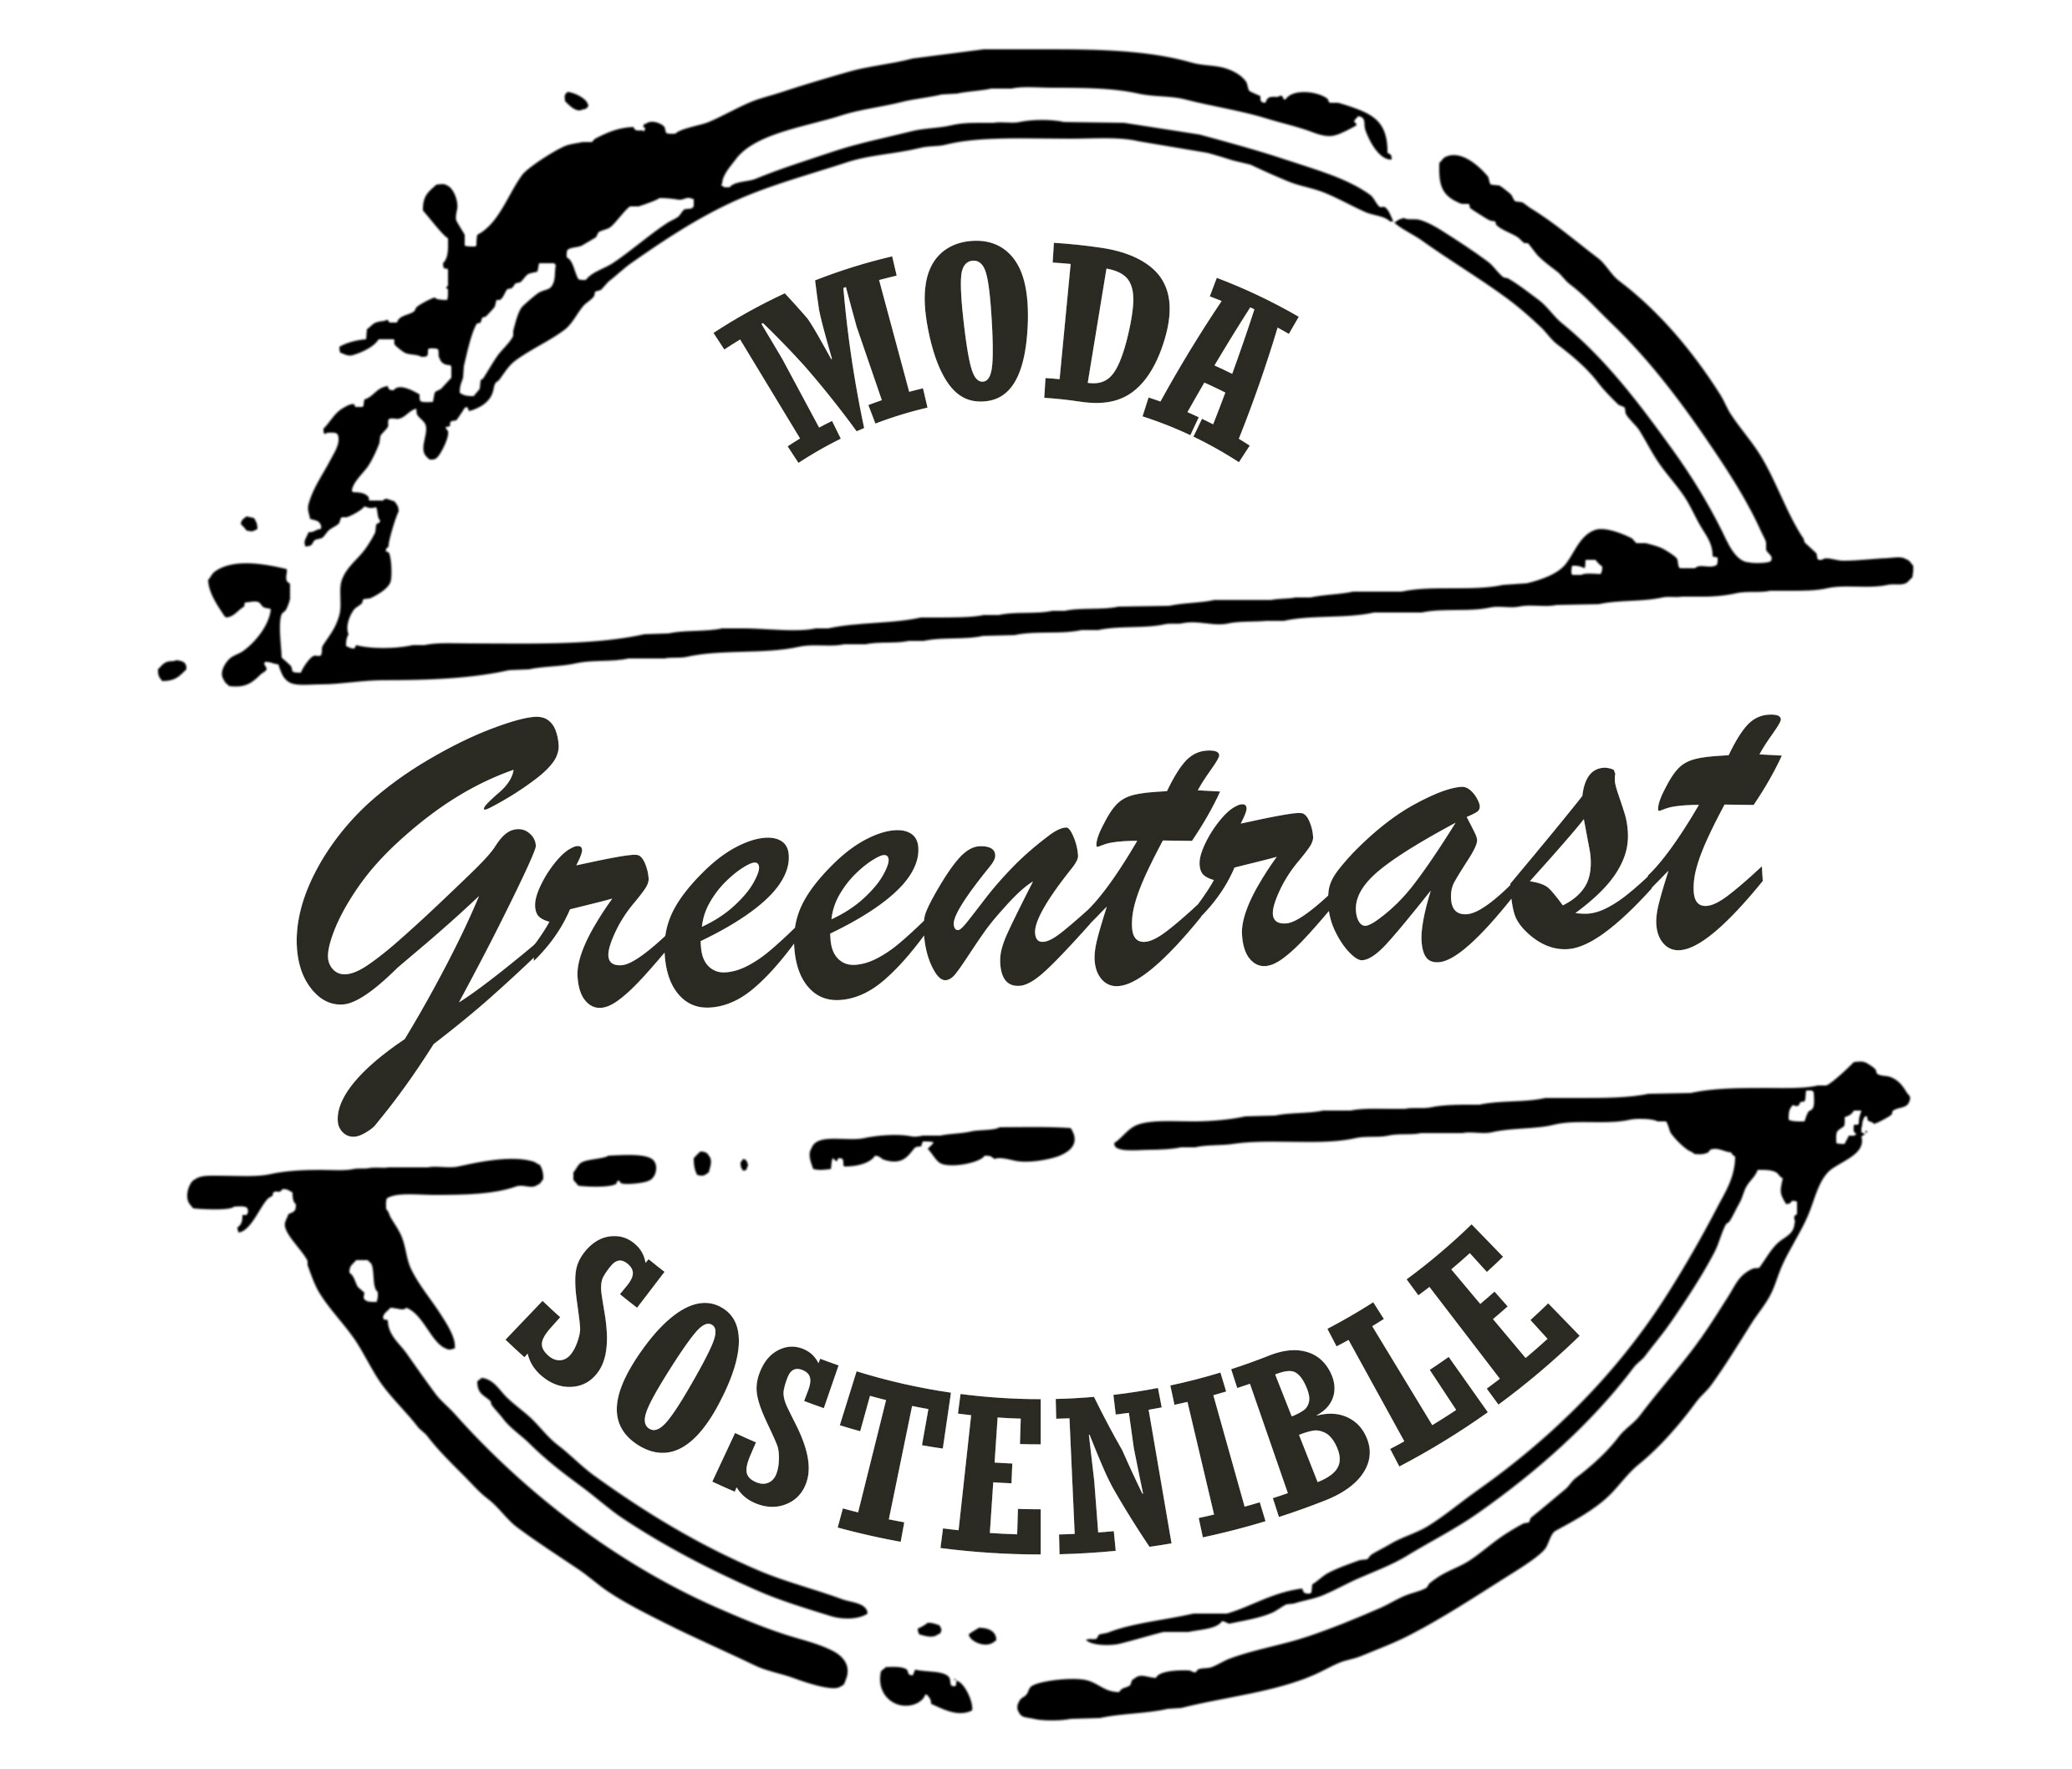 Greentrast. Moda Sostenible, Muebles Upcycling, Cosmética Natural